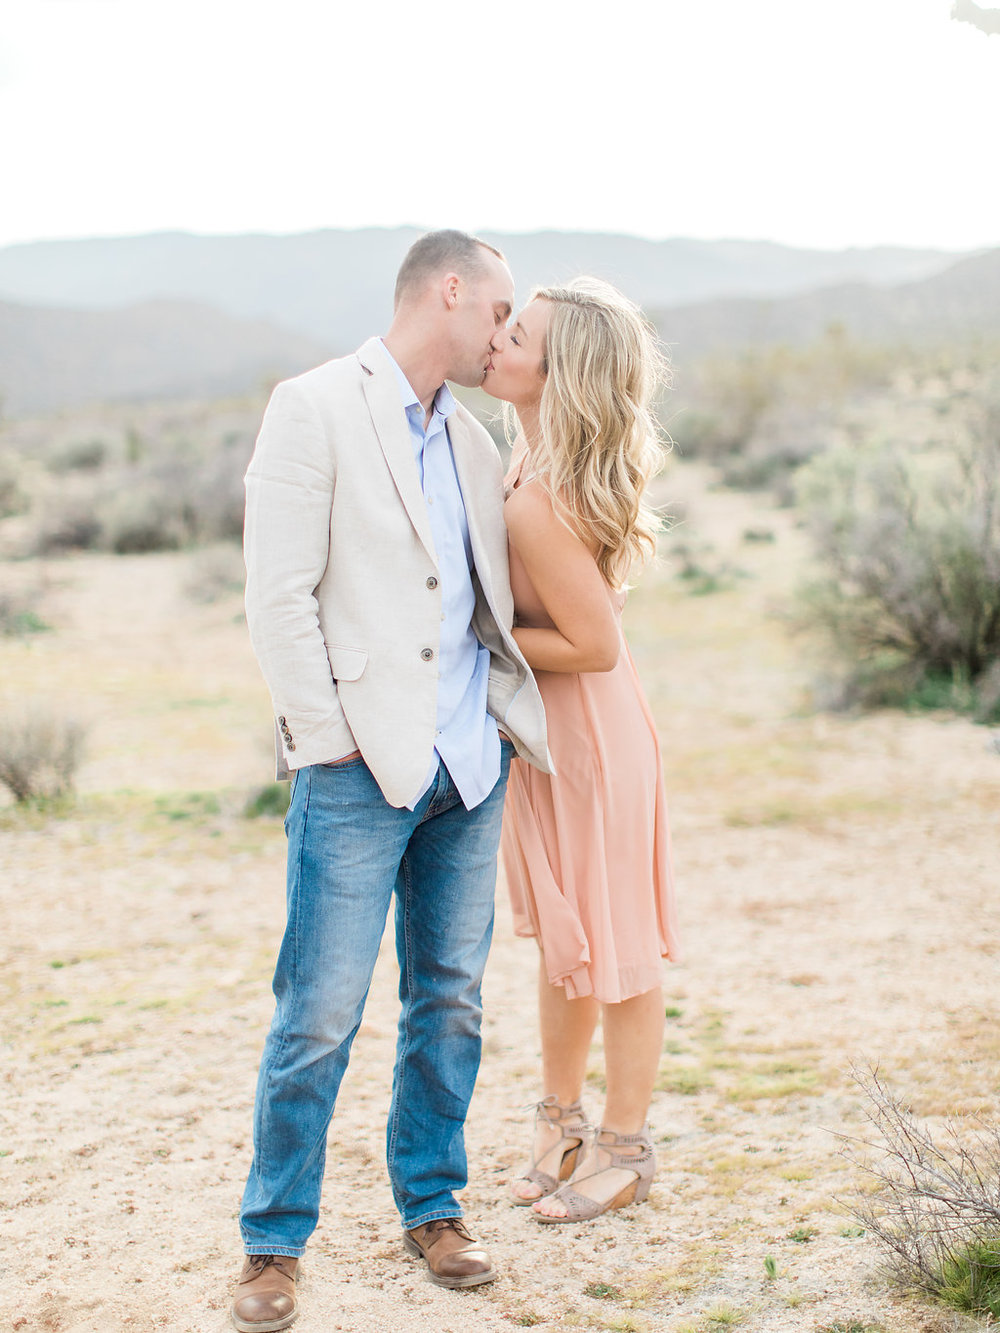 Joshua Tree Engagement Session | What to Wear for Pictures | Southern California Wedding Photographer | Mastin Labs Fuji Film | Fine Art Photographer | Desert Shoot | 29 Palms Photo Session.jpg